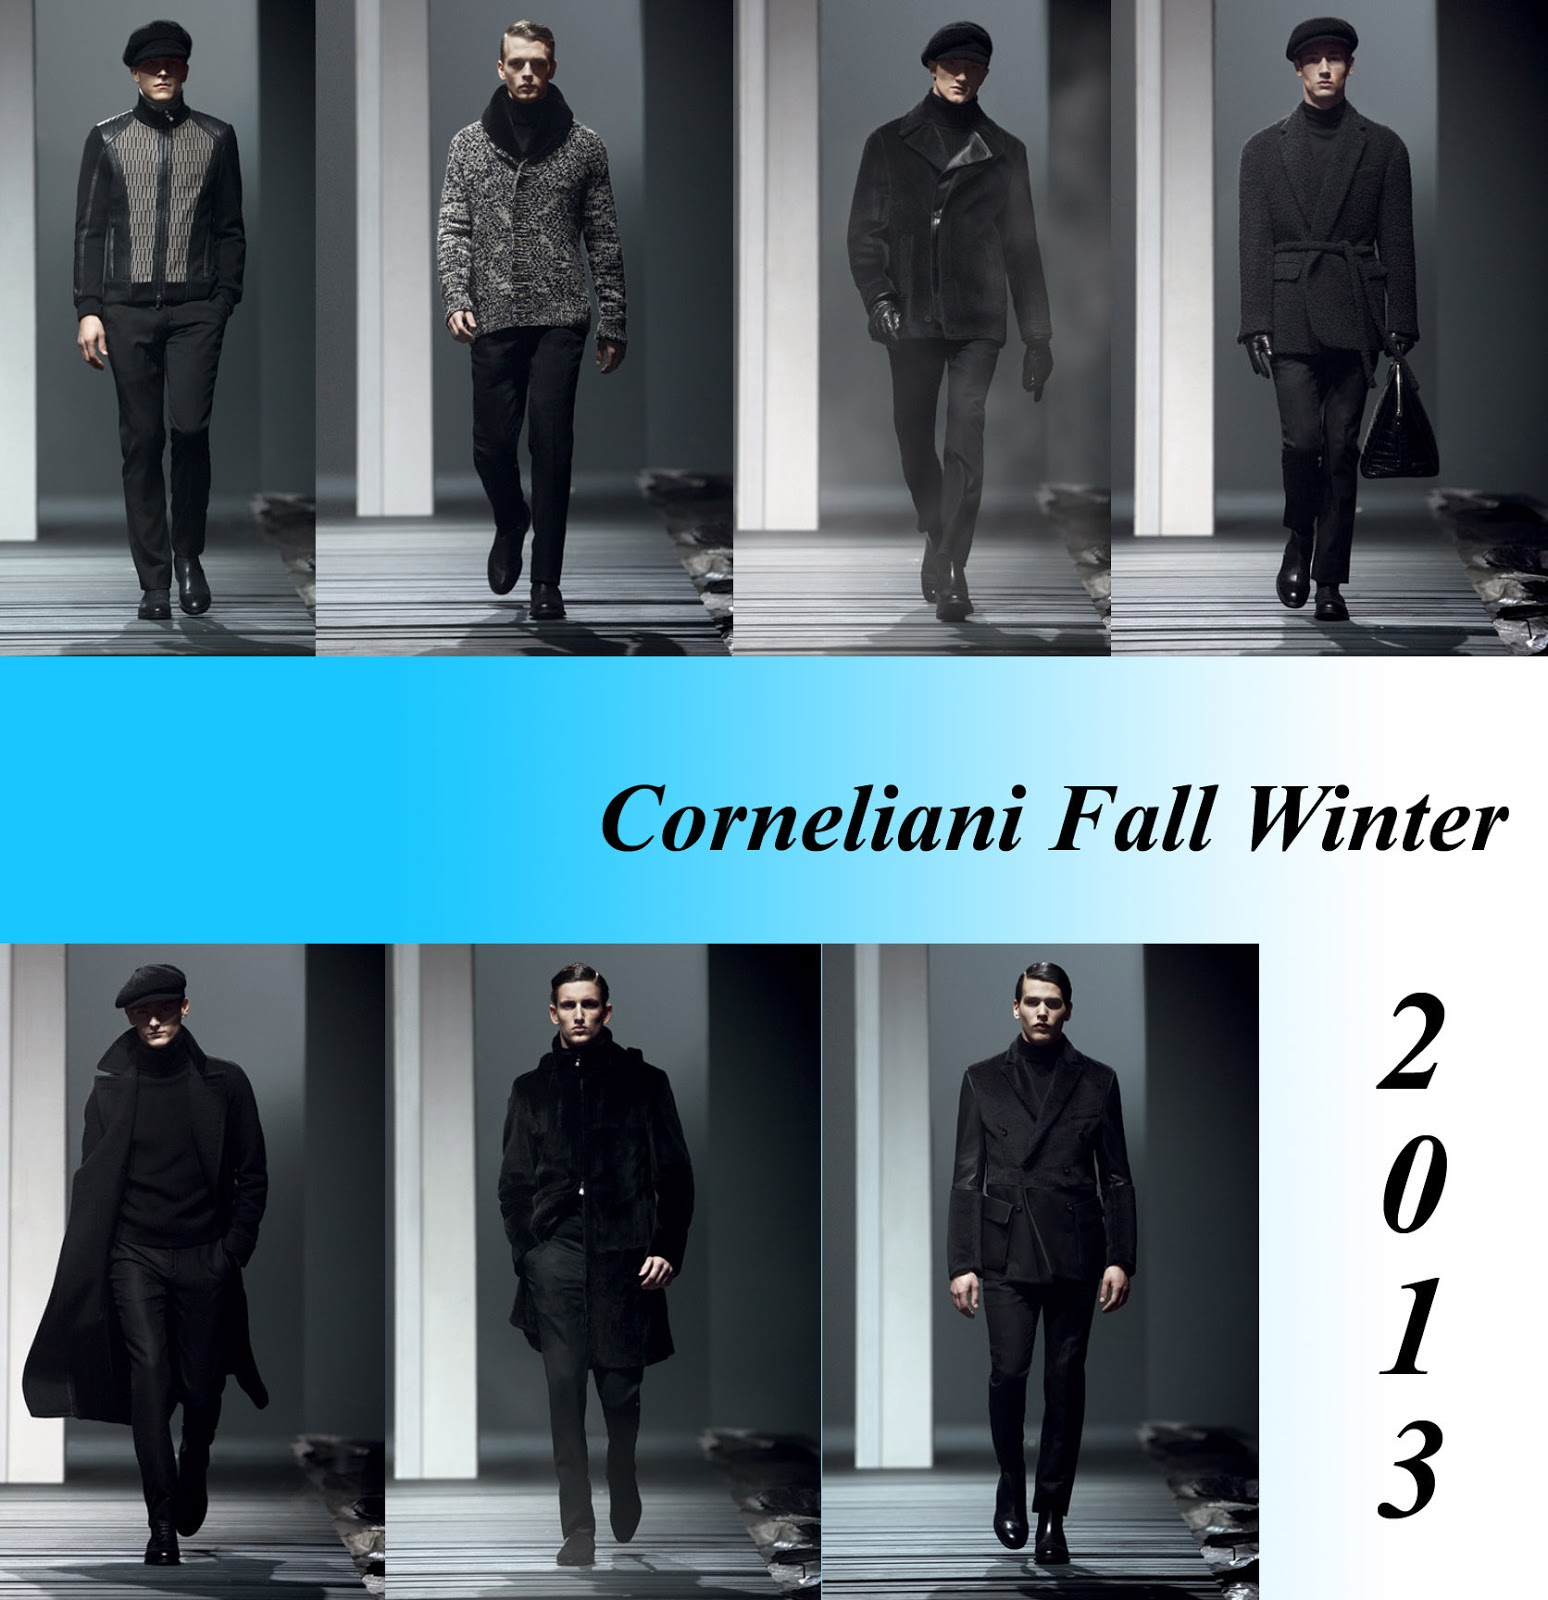 Corneliani fusion fall winter collection 2013 fashion focus to talk about the collection shapes are pared down to the max in the tailored suits with tapered trousers and soft light longer jackets voltagebd Gallery